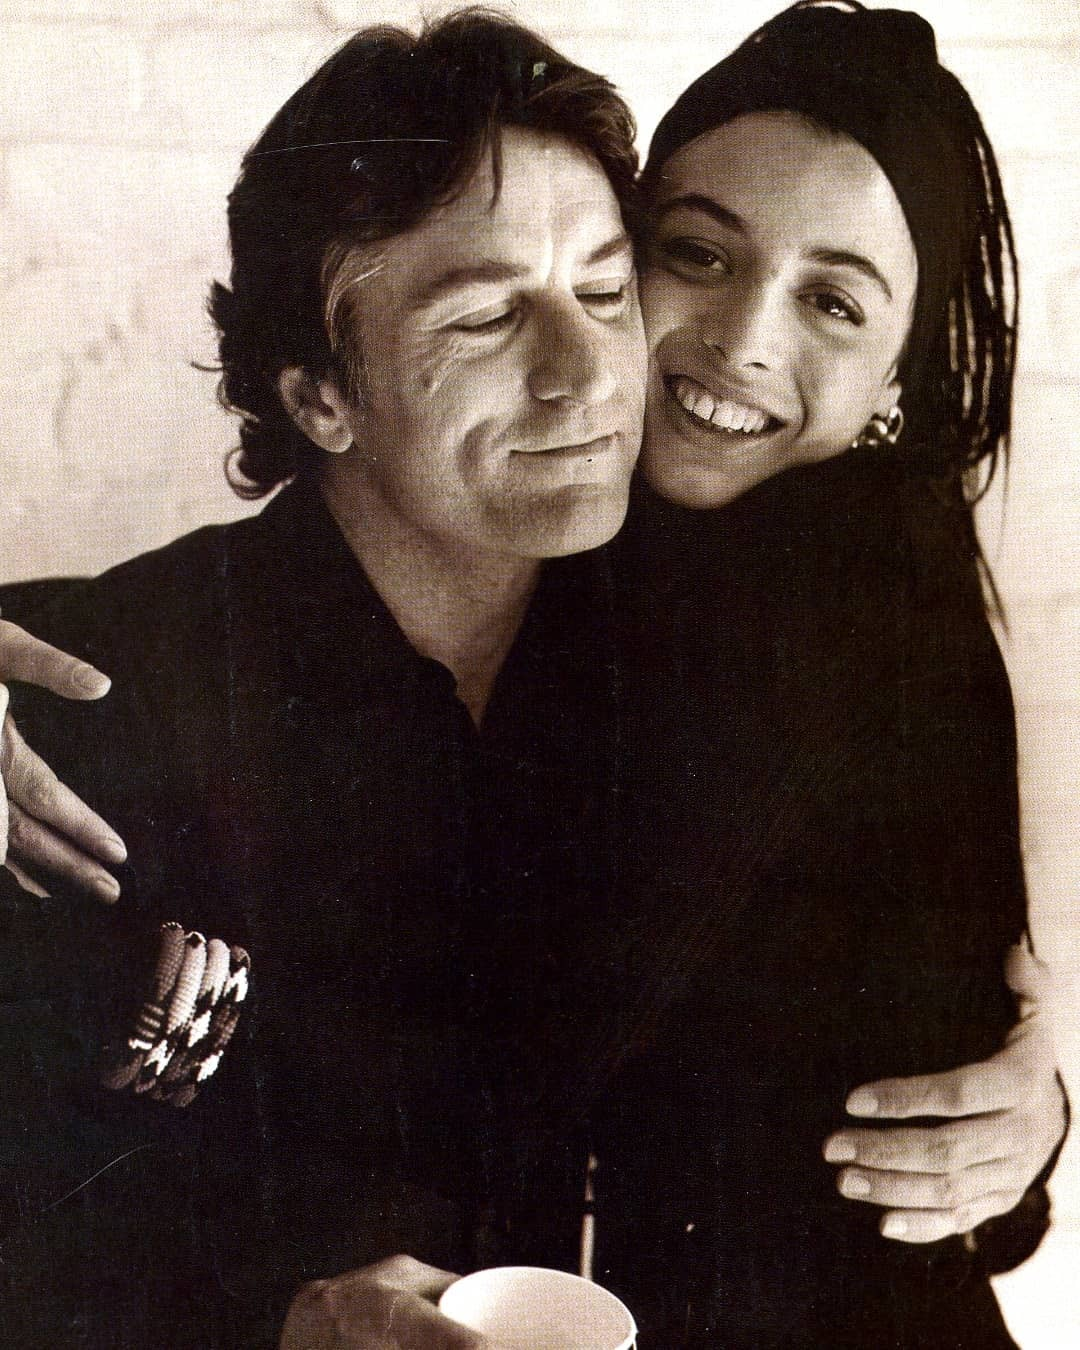 Robert De Niro  Robert De Niro and his daughter Drena De